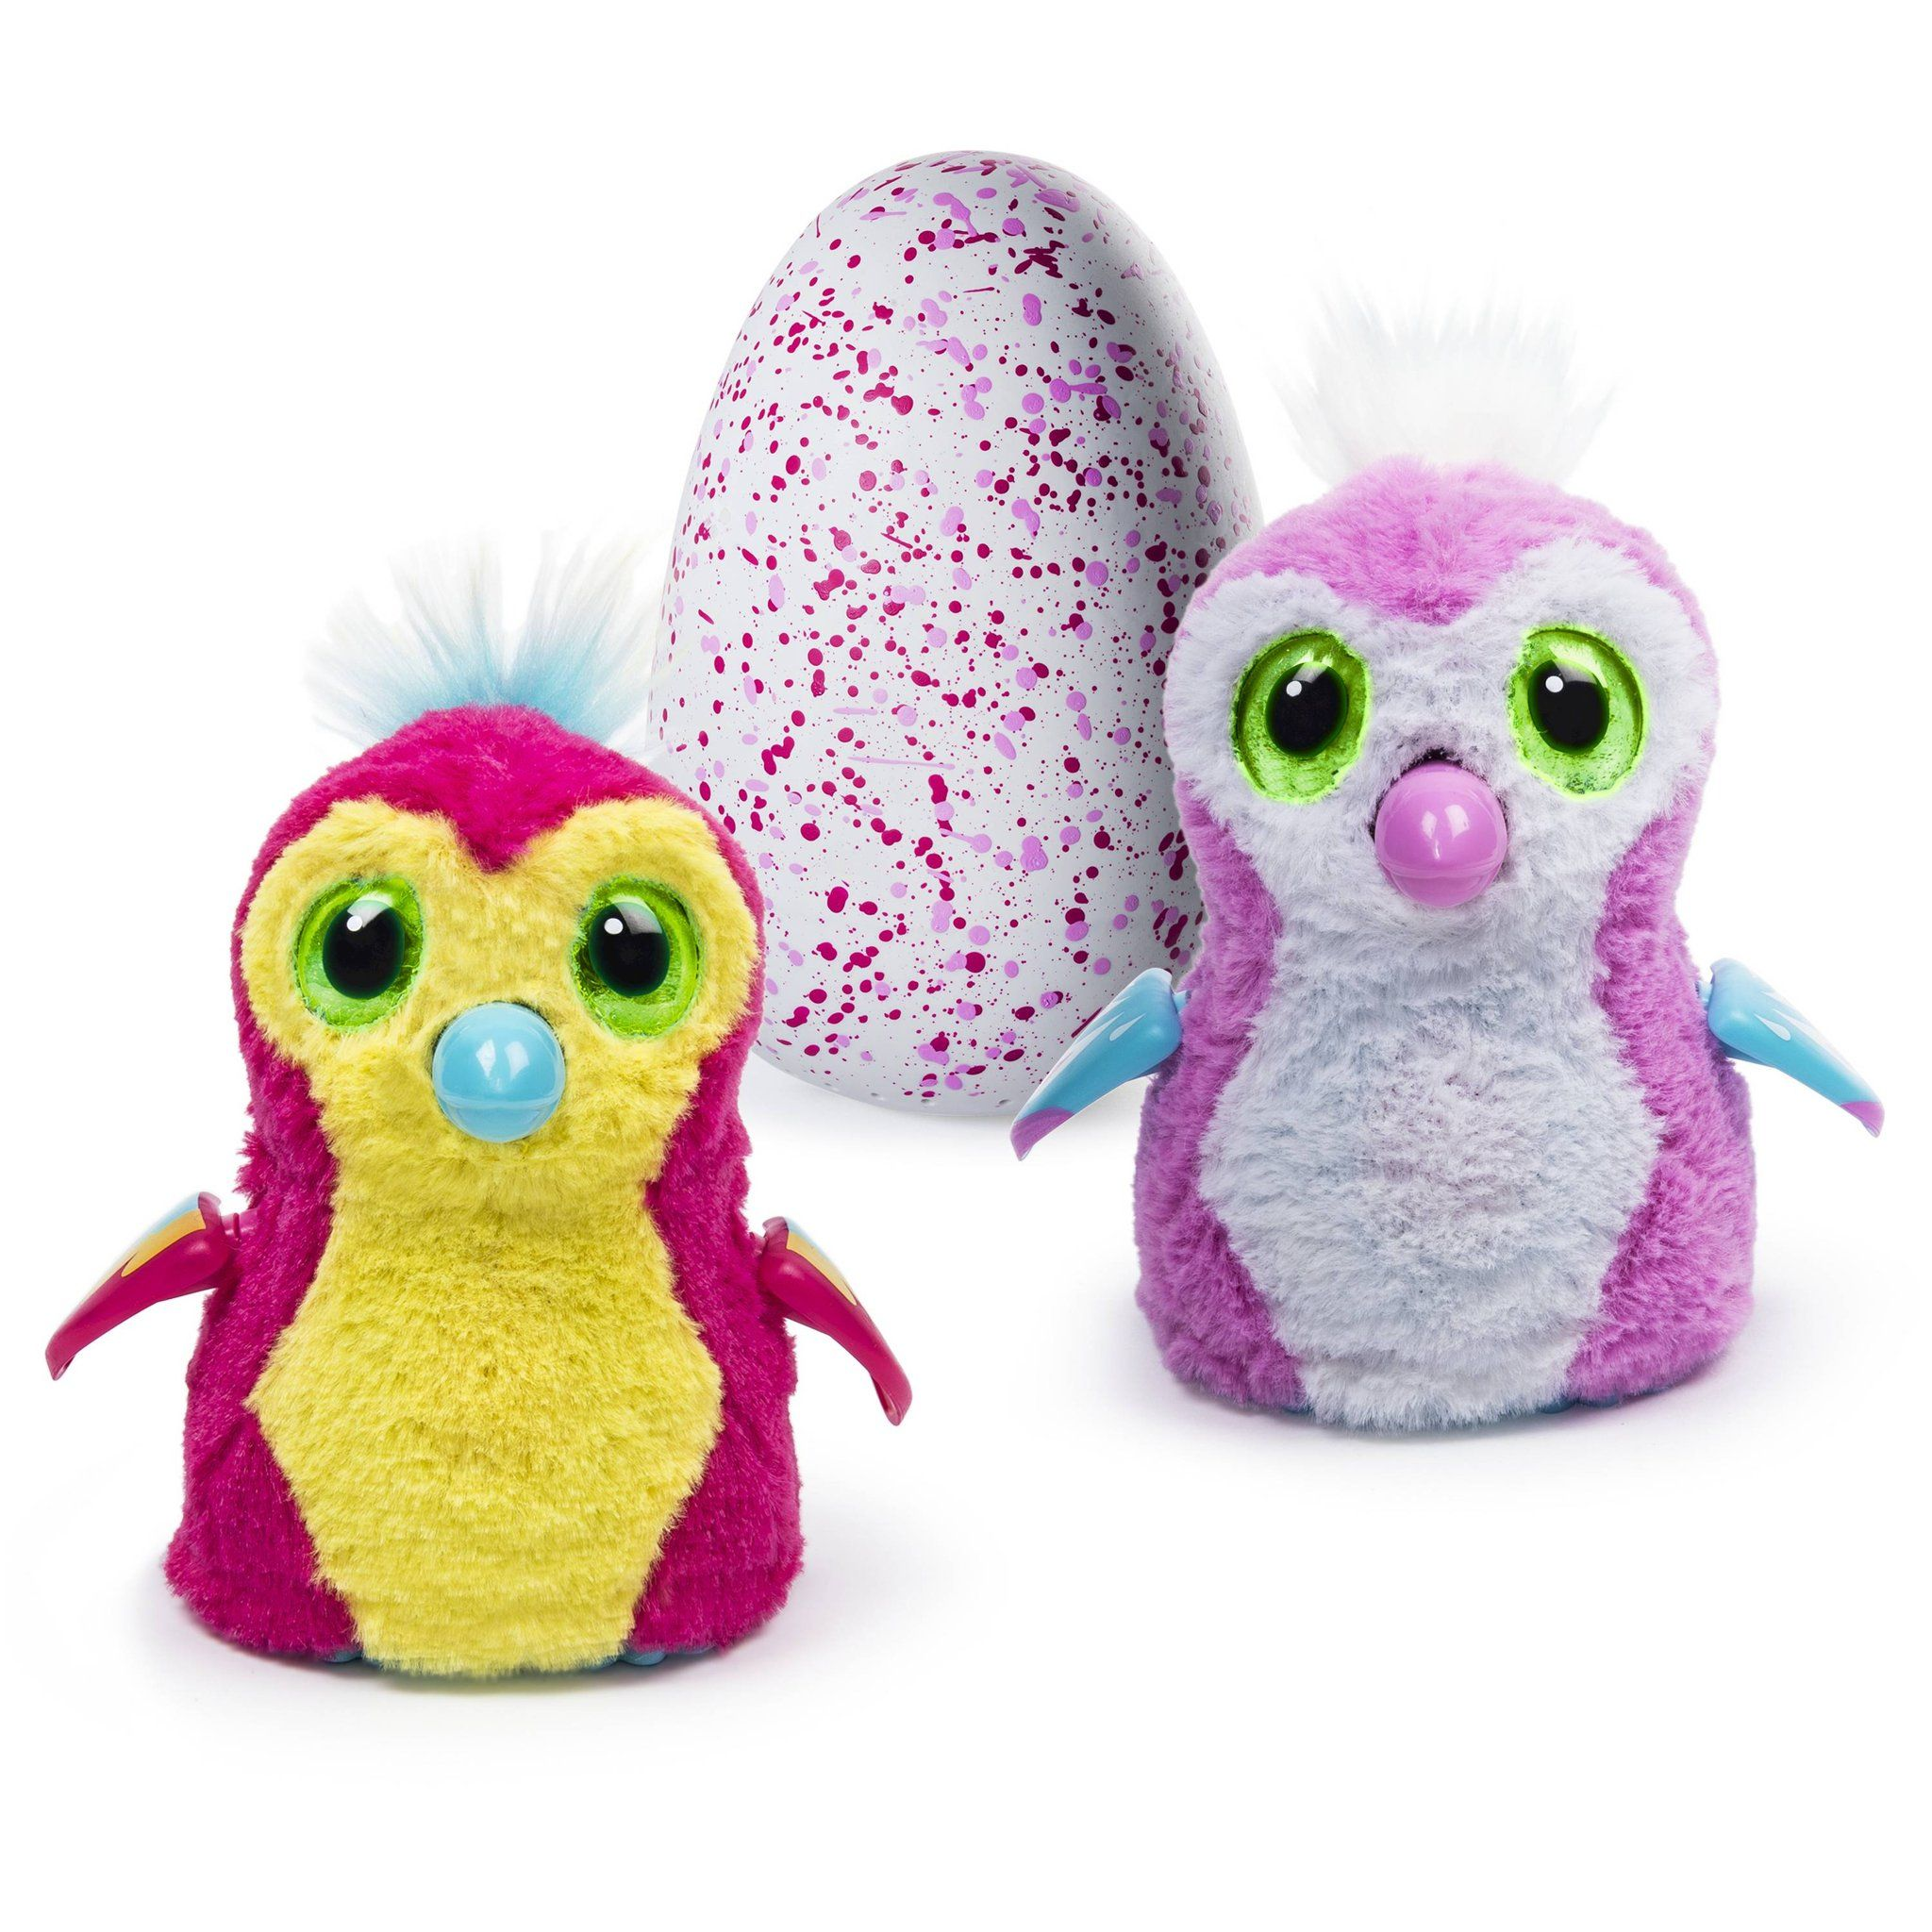 Oh Sh t All My Kid Wants For Christmas Is a Hatchimal